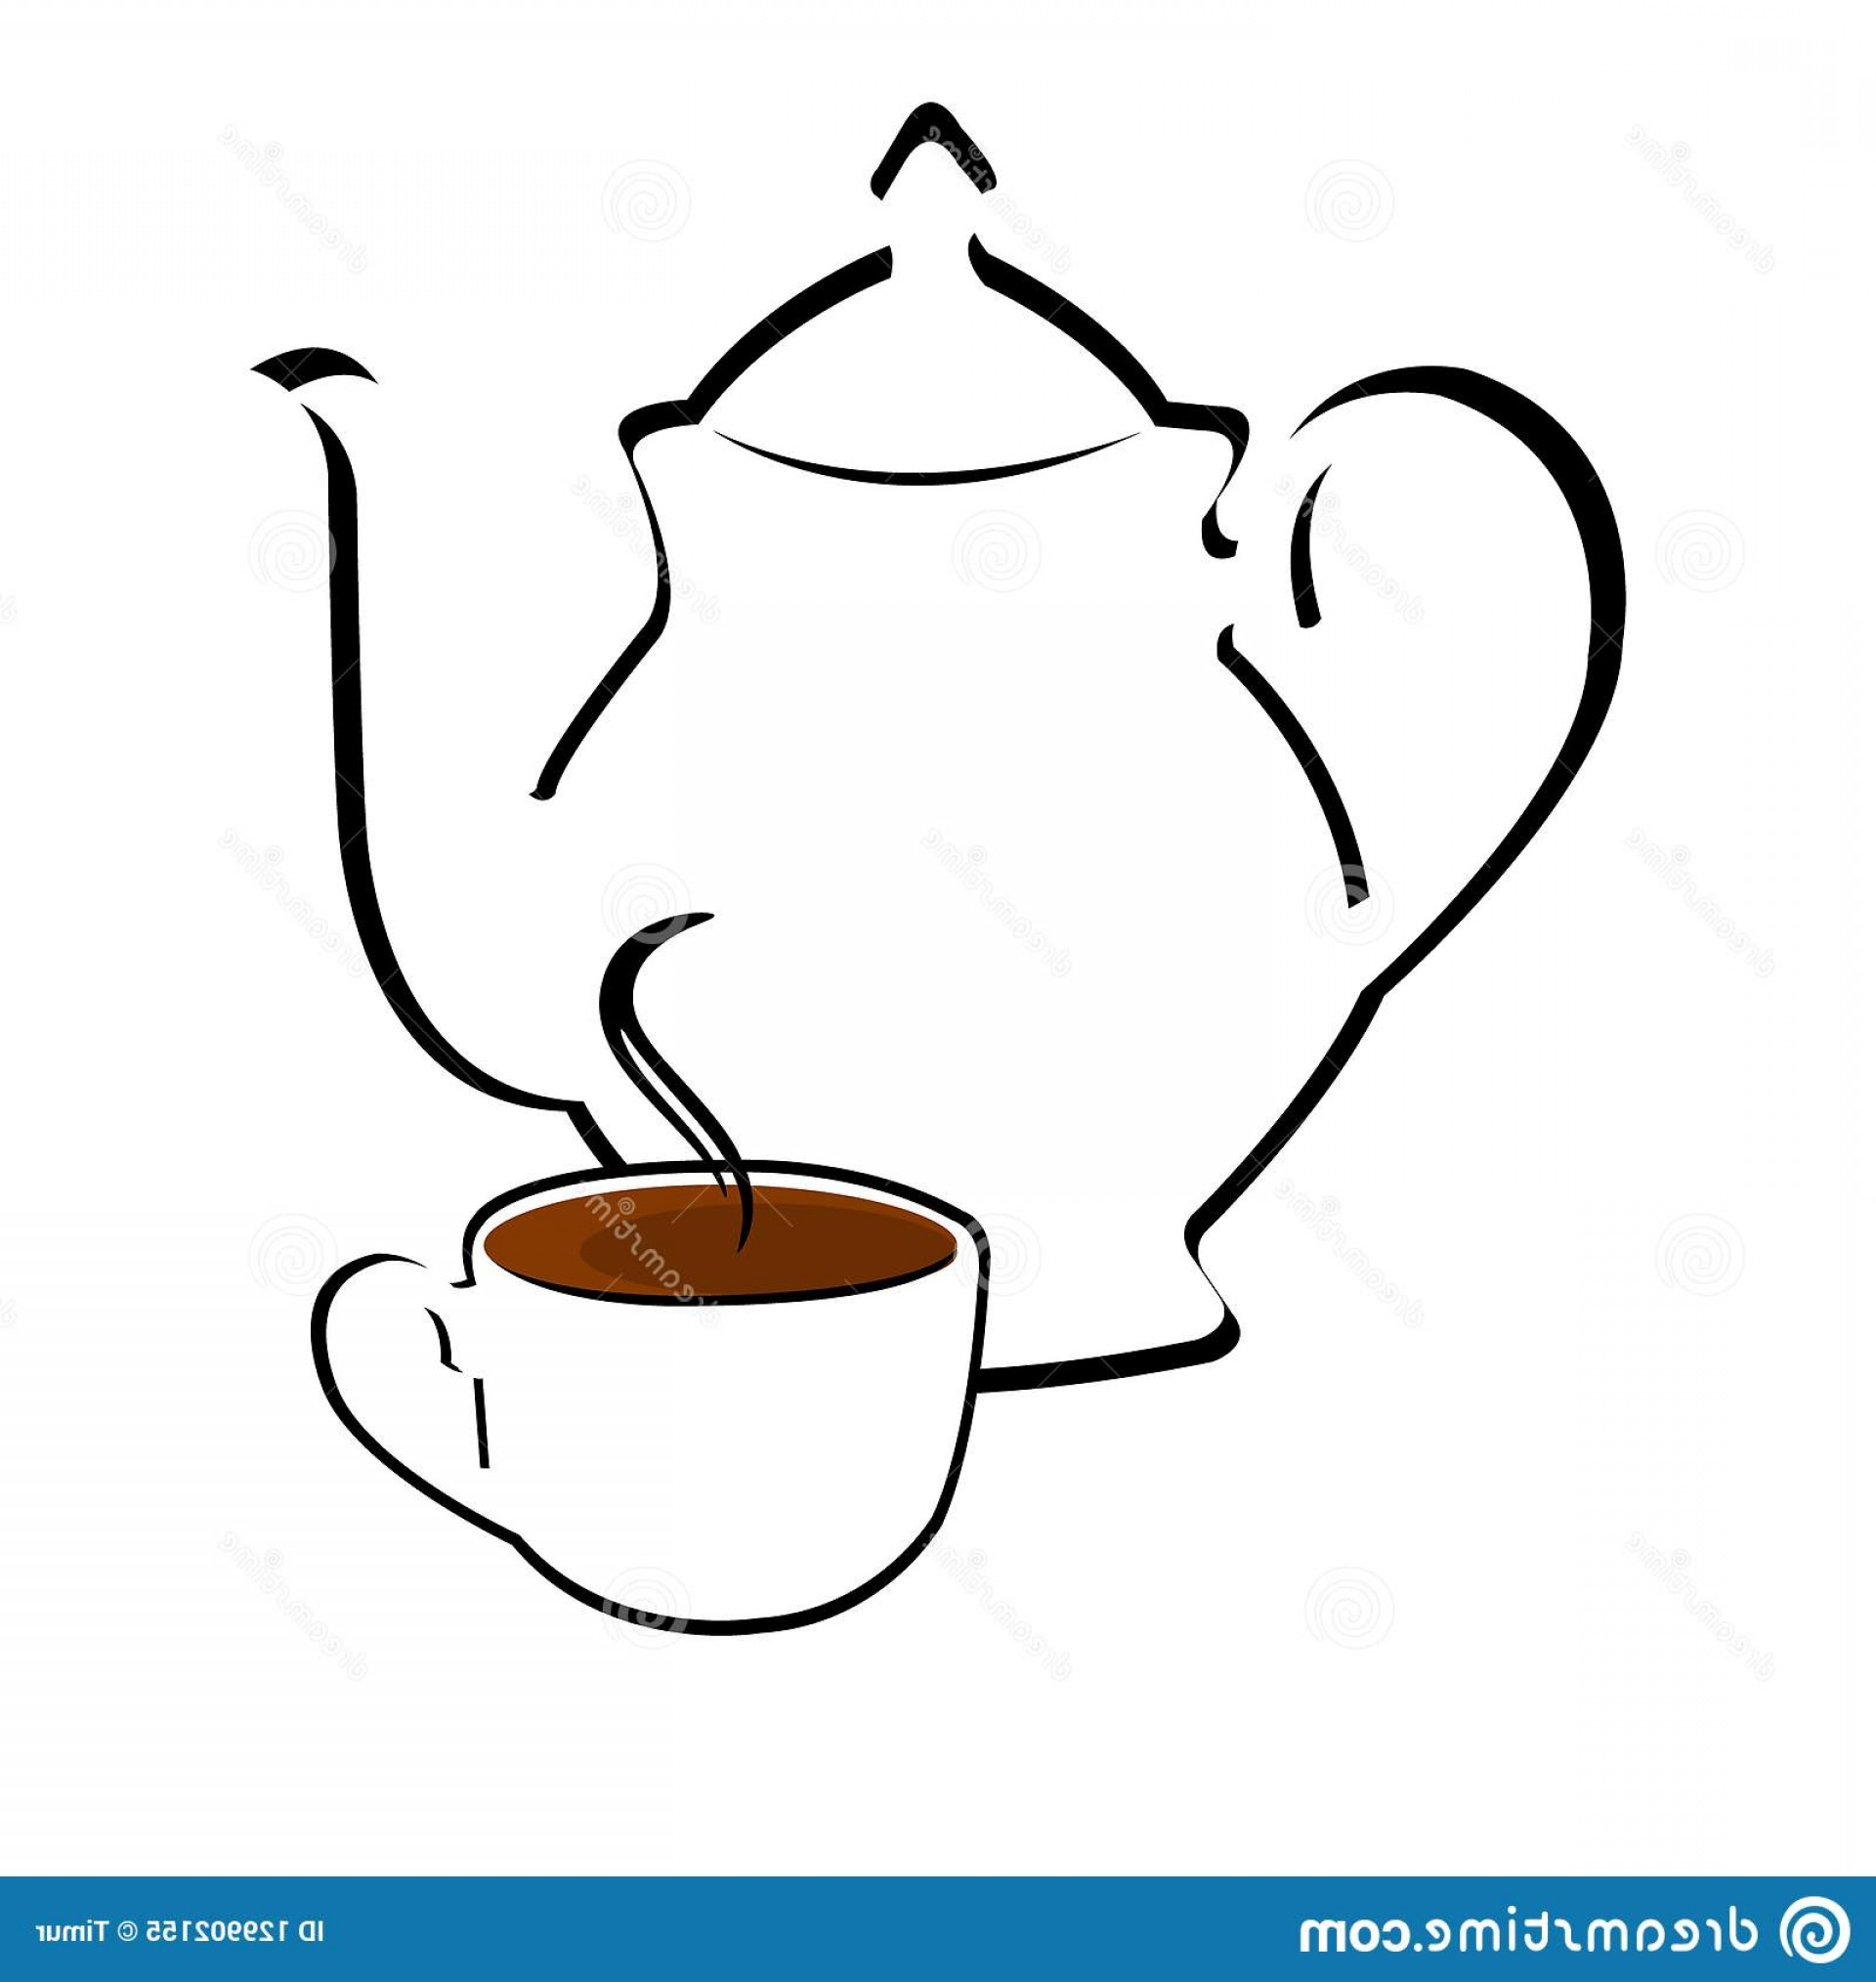 Teapot And Cup Vector: Teapot Cup Vector Illustration Stylized Vector Teapot Cup Tea Image